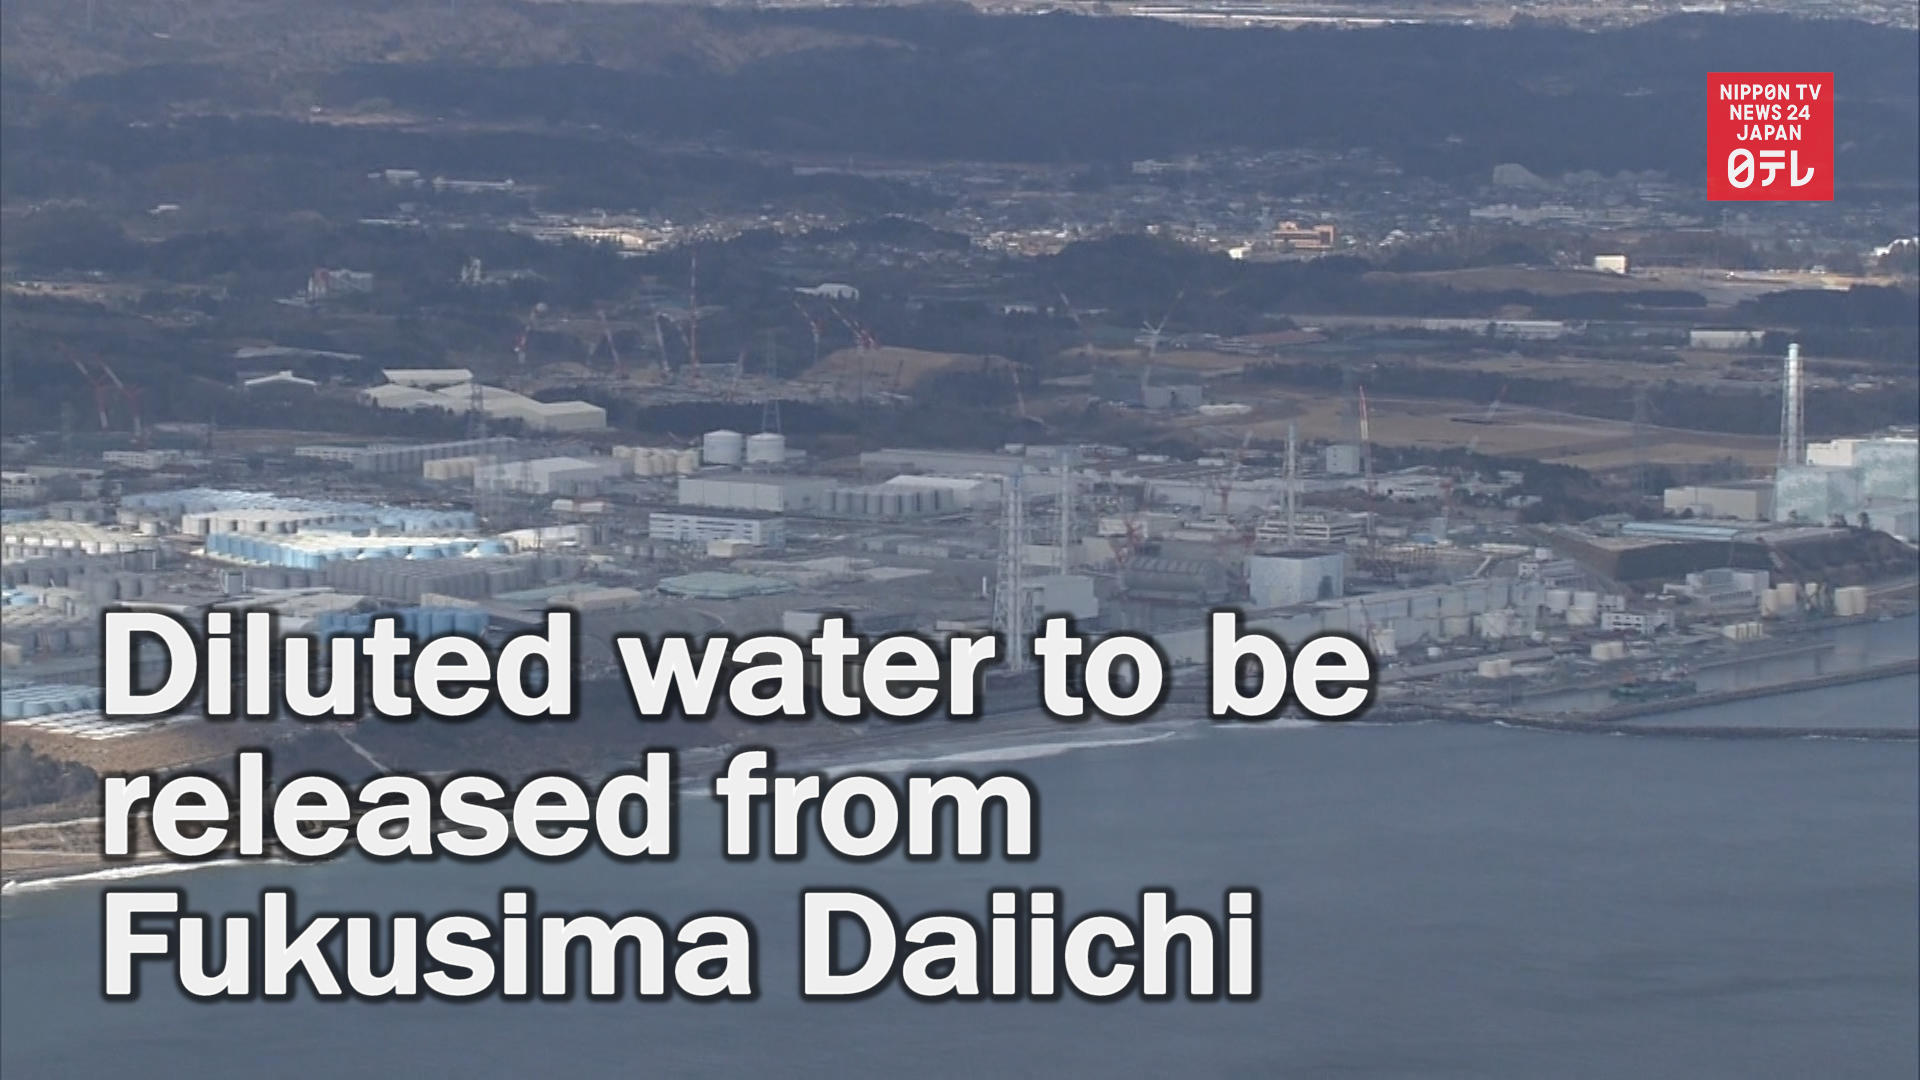 Japan to dilute treated water at Fukushima plant before releasing it into sea